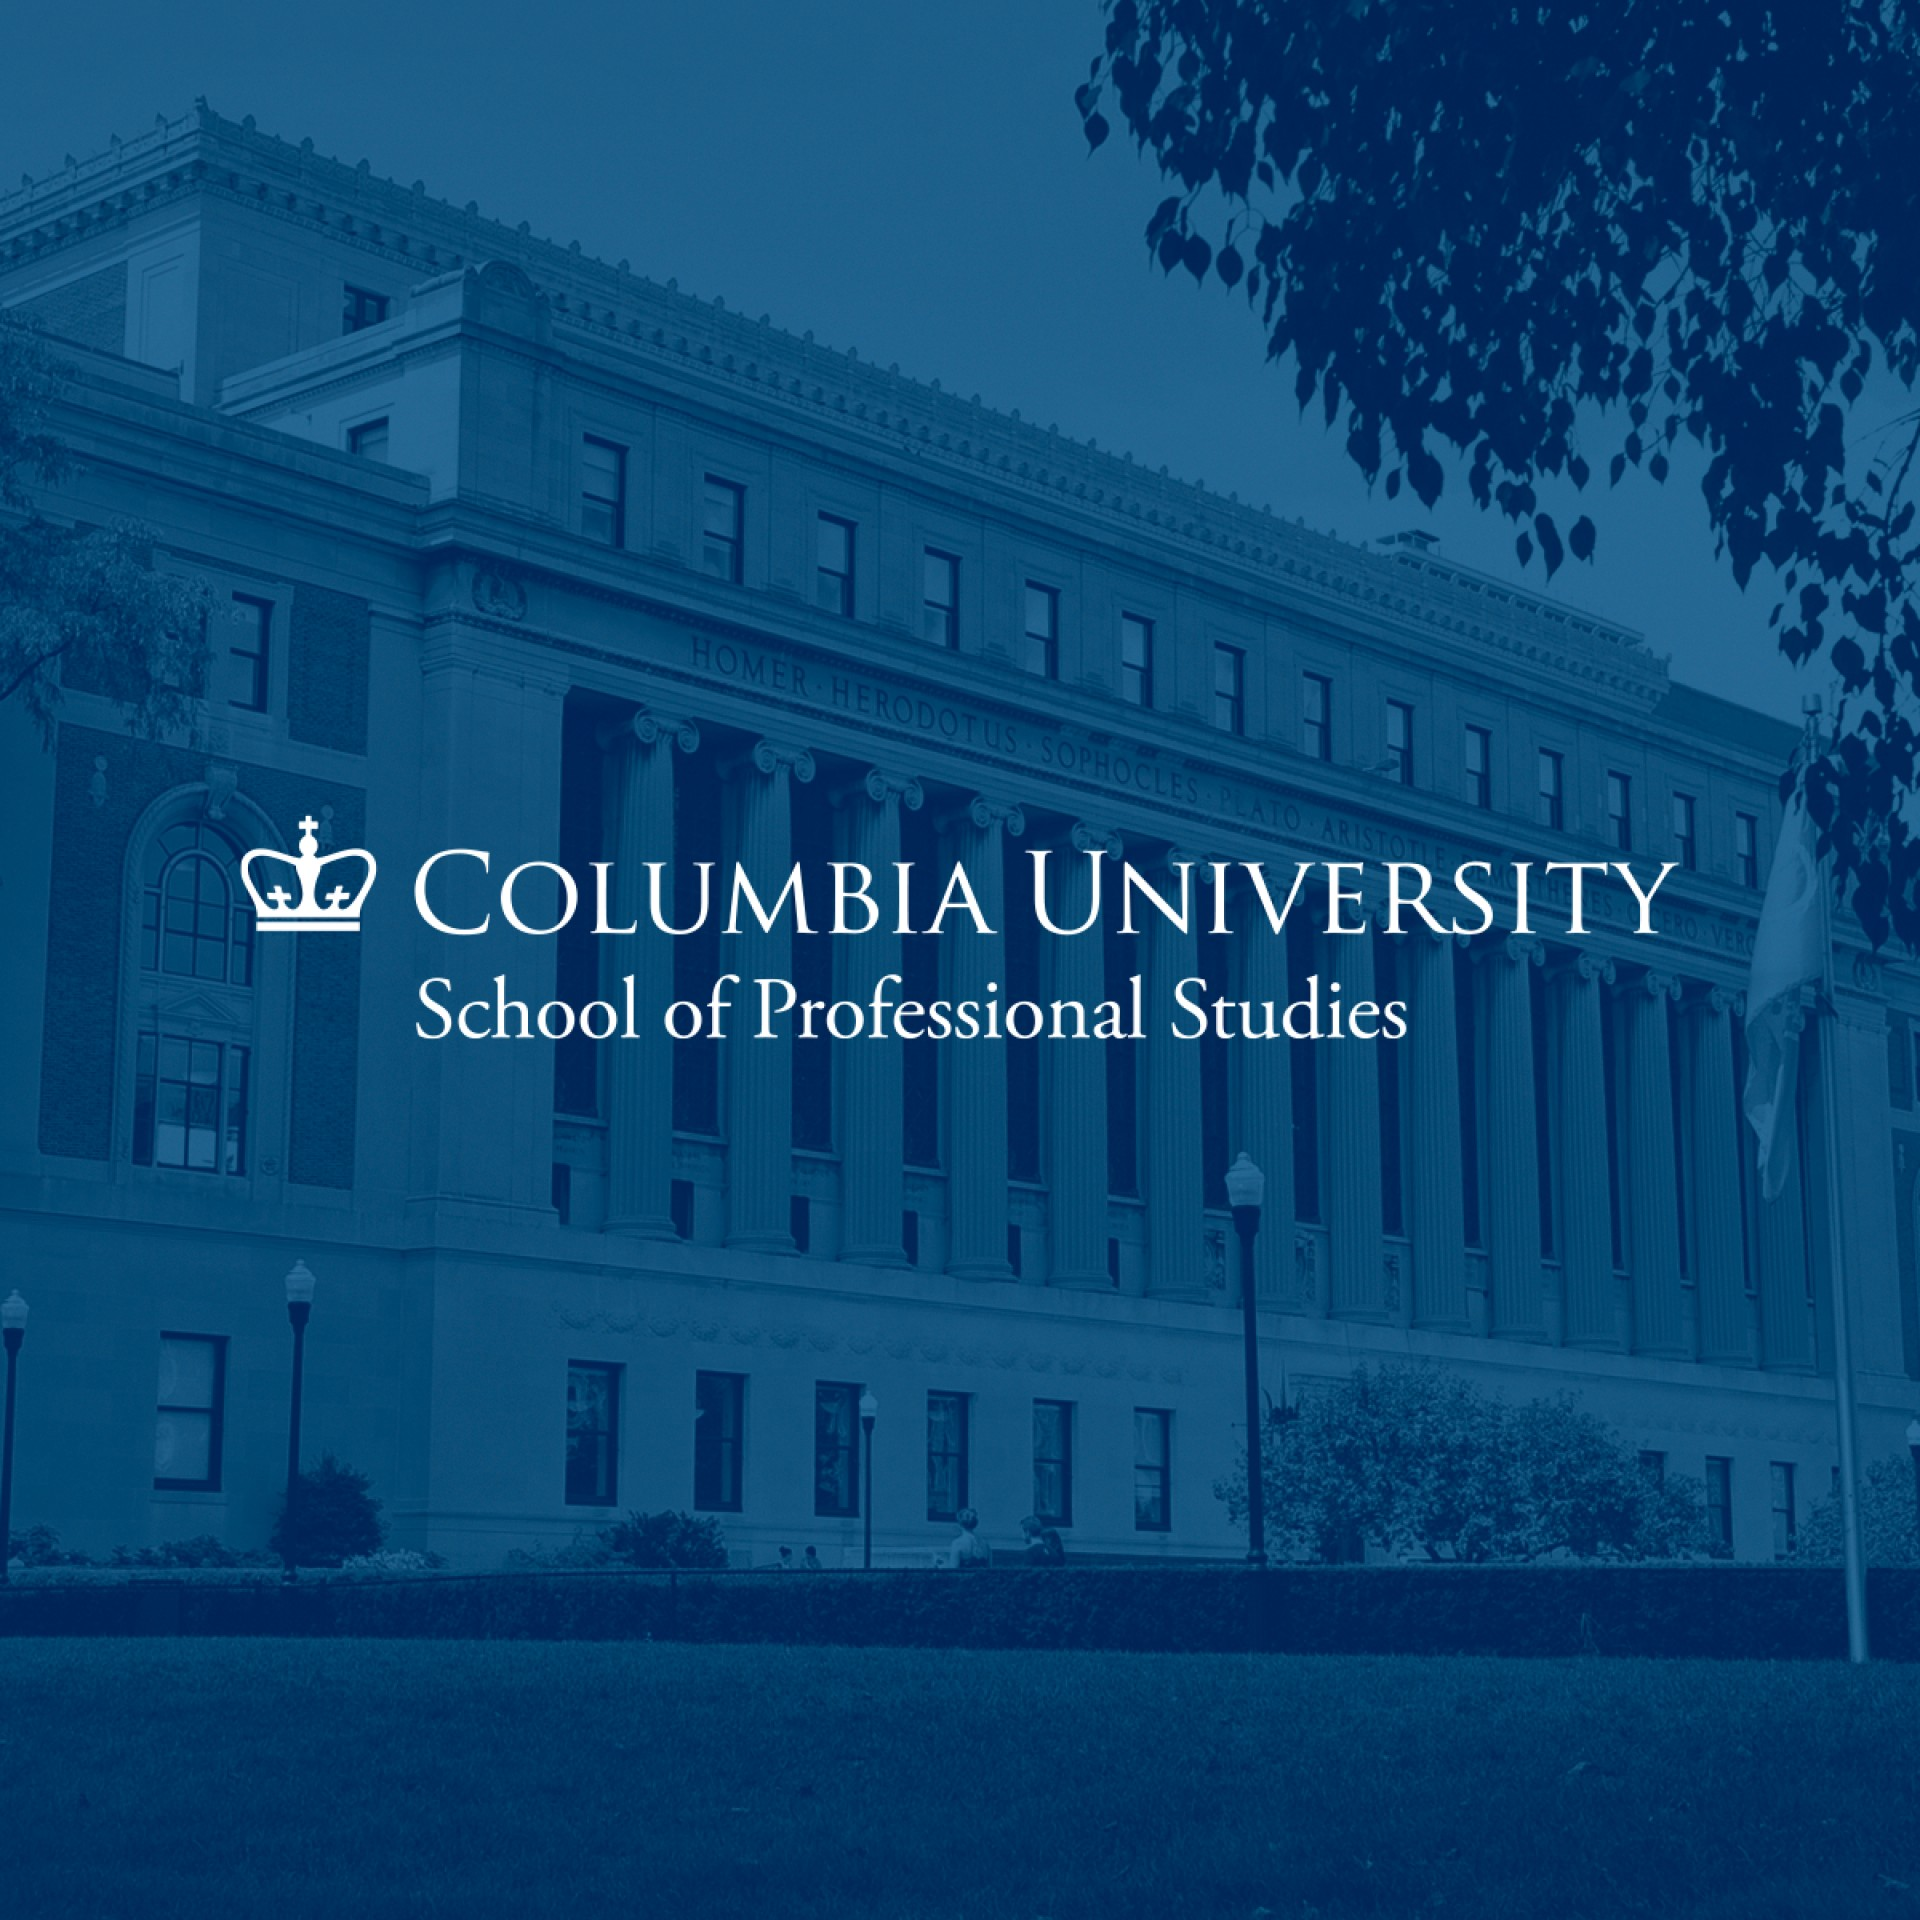 012 Essay Example Columbia University 18sps145 Opengraph Sps01 Wonderful Application Tips Prompt Supplement Examples 1920